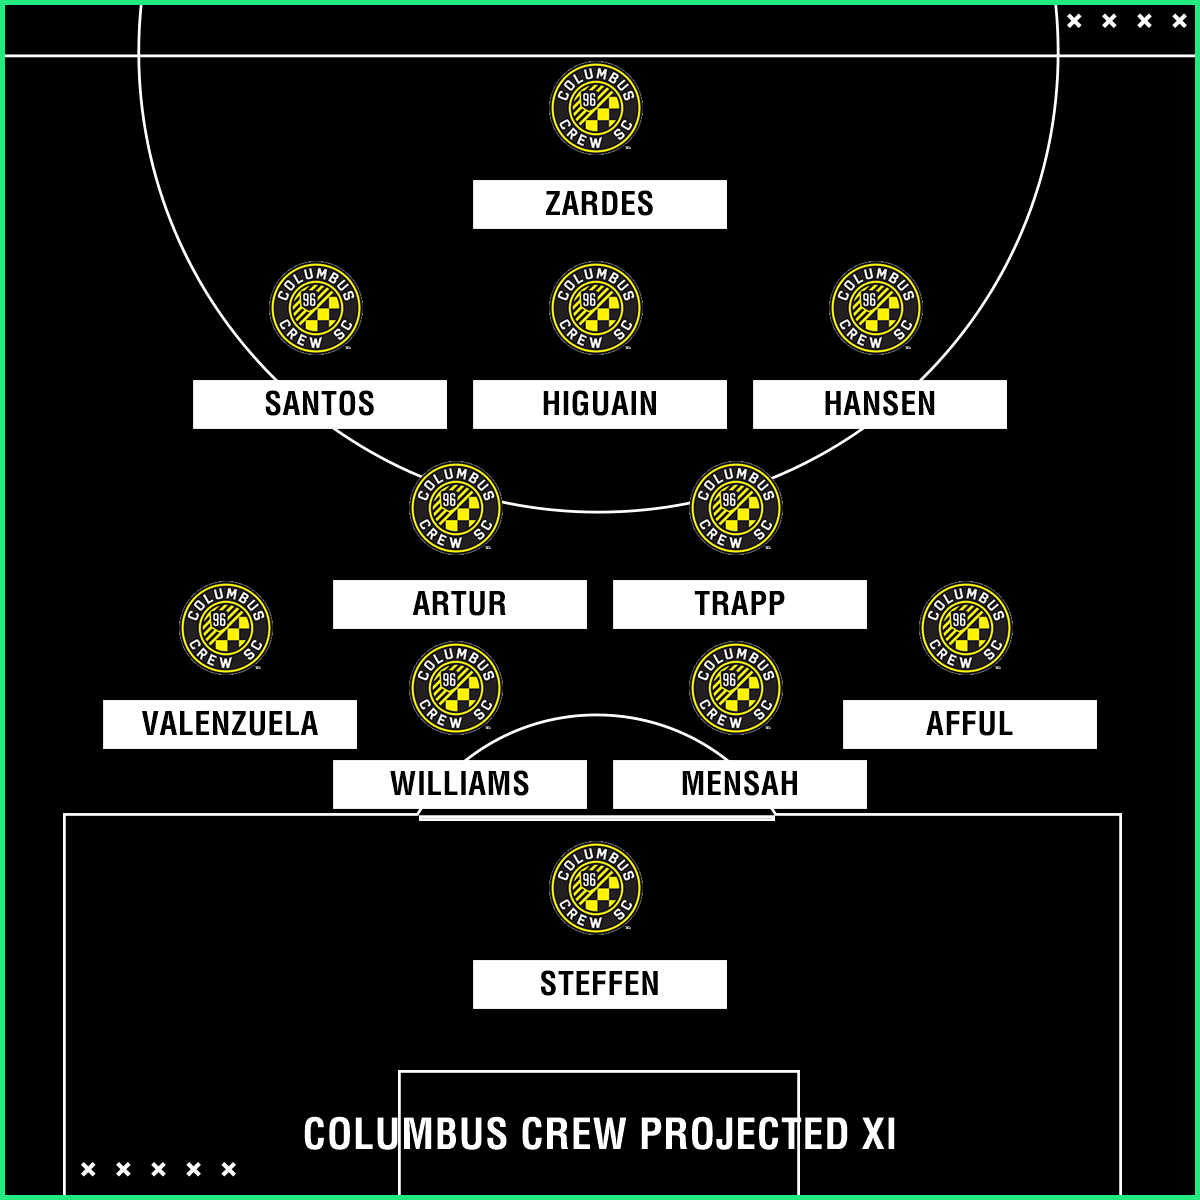 Columbus Crew projected XI